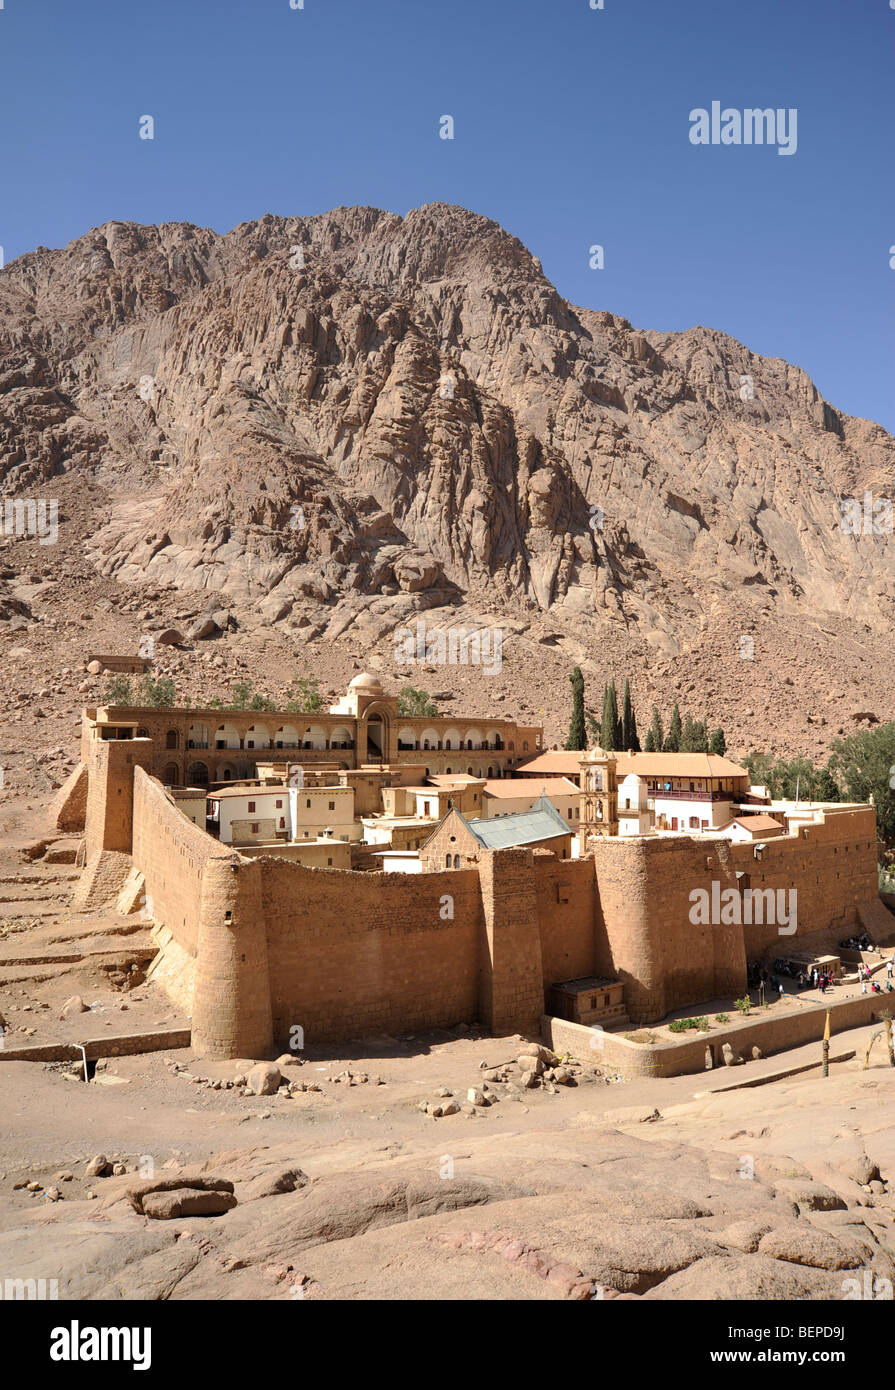 St. Catherines monastery in Sinai Egypt - Stock Image